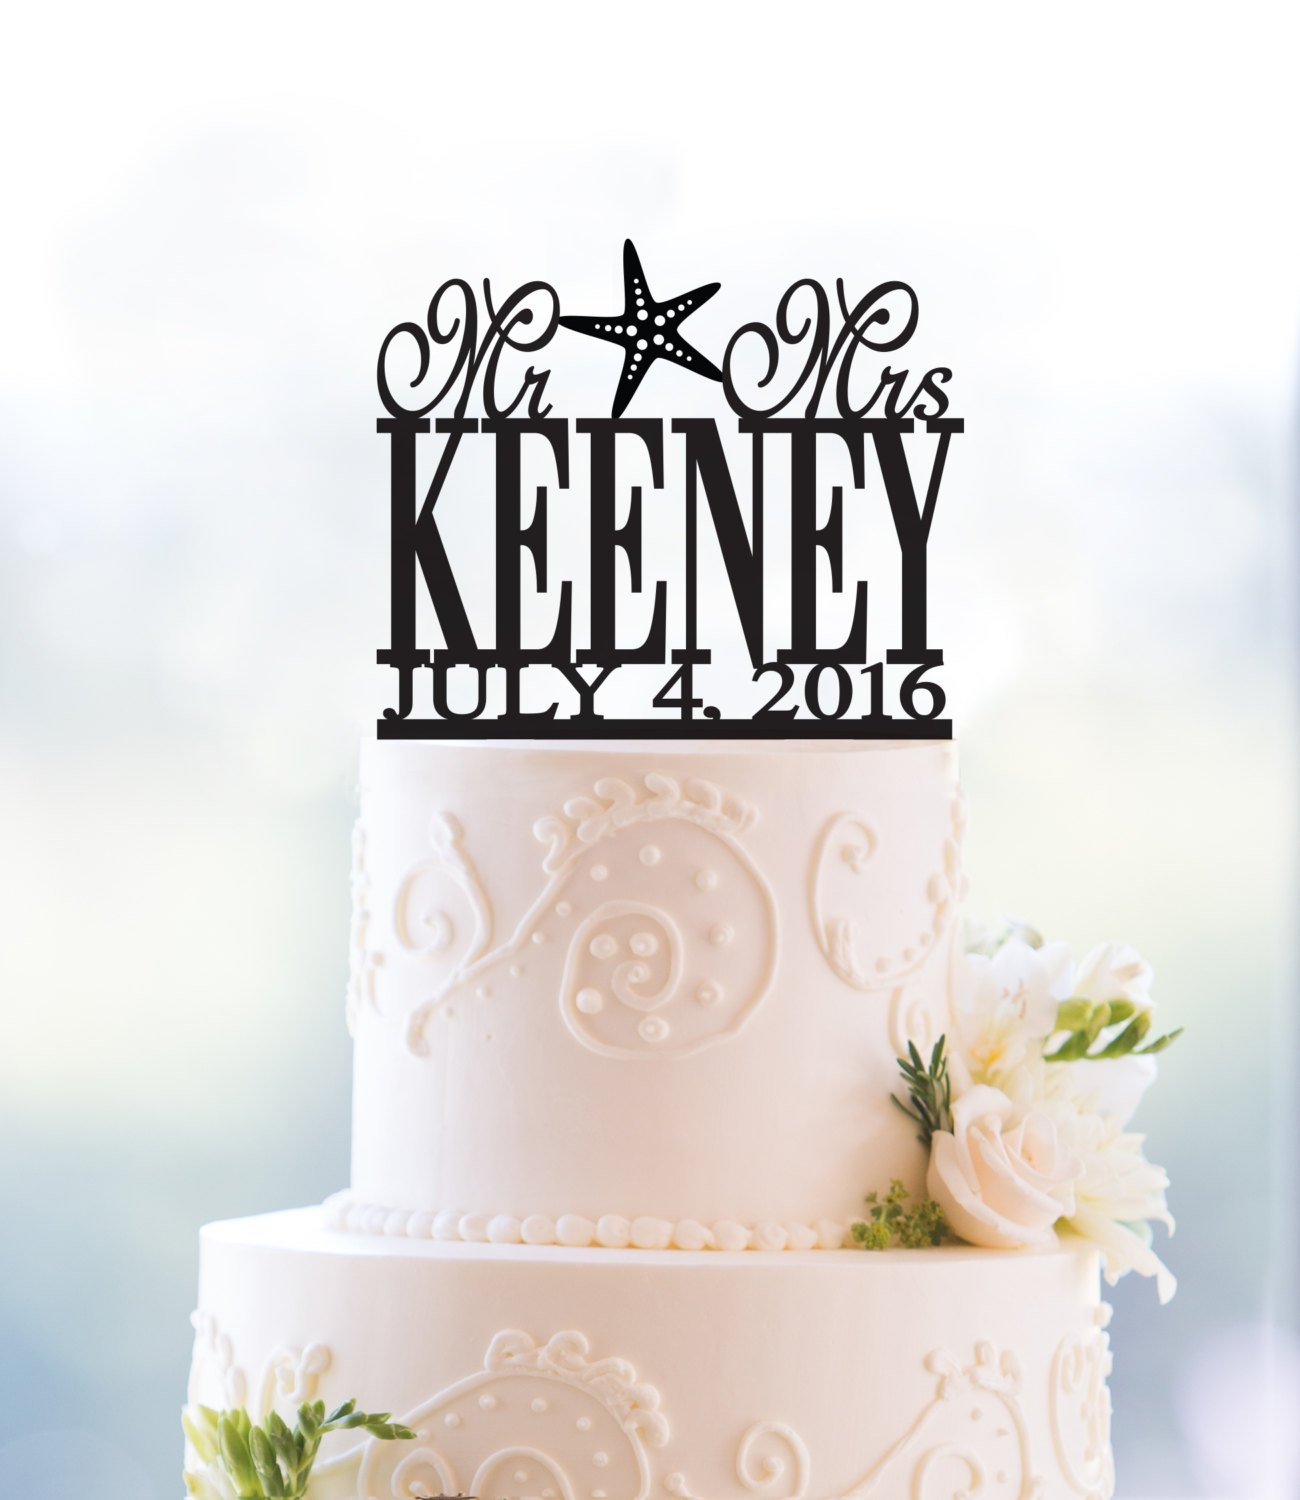 Beach Theme Mr And Mrs Last Name With Starfish Wedding Cake Topper With Date Personalized Cake Topper Summer Destination Wedding T035